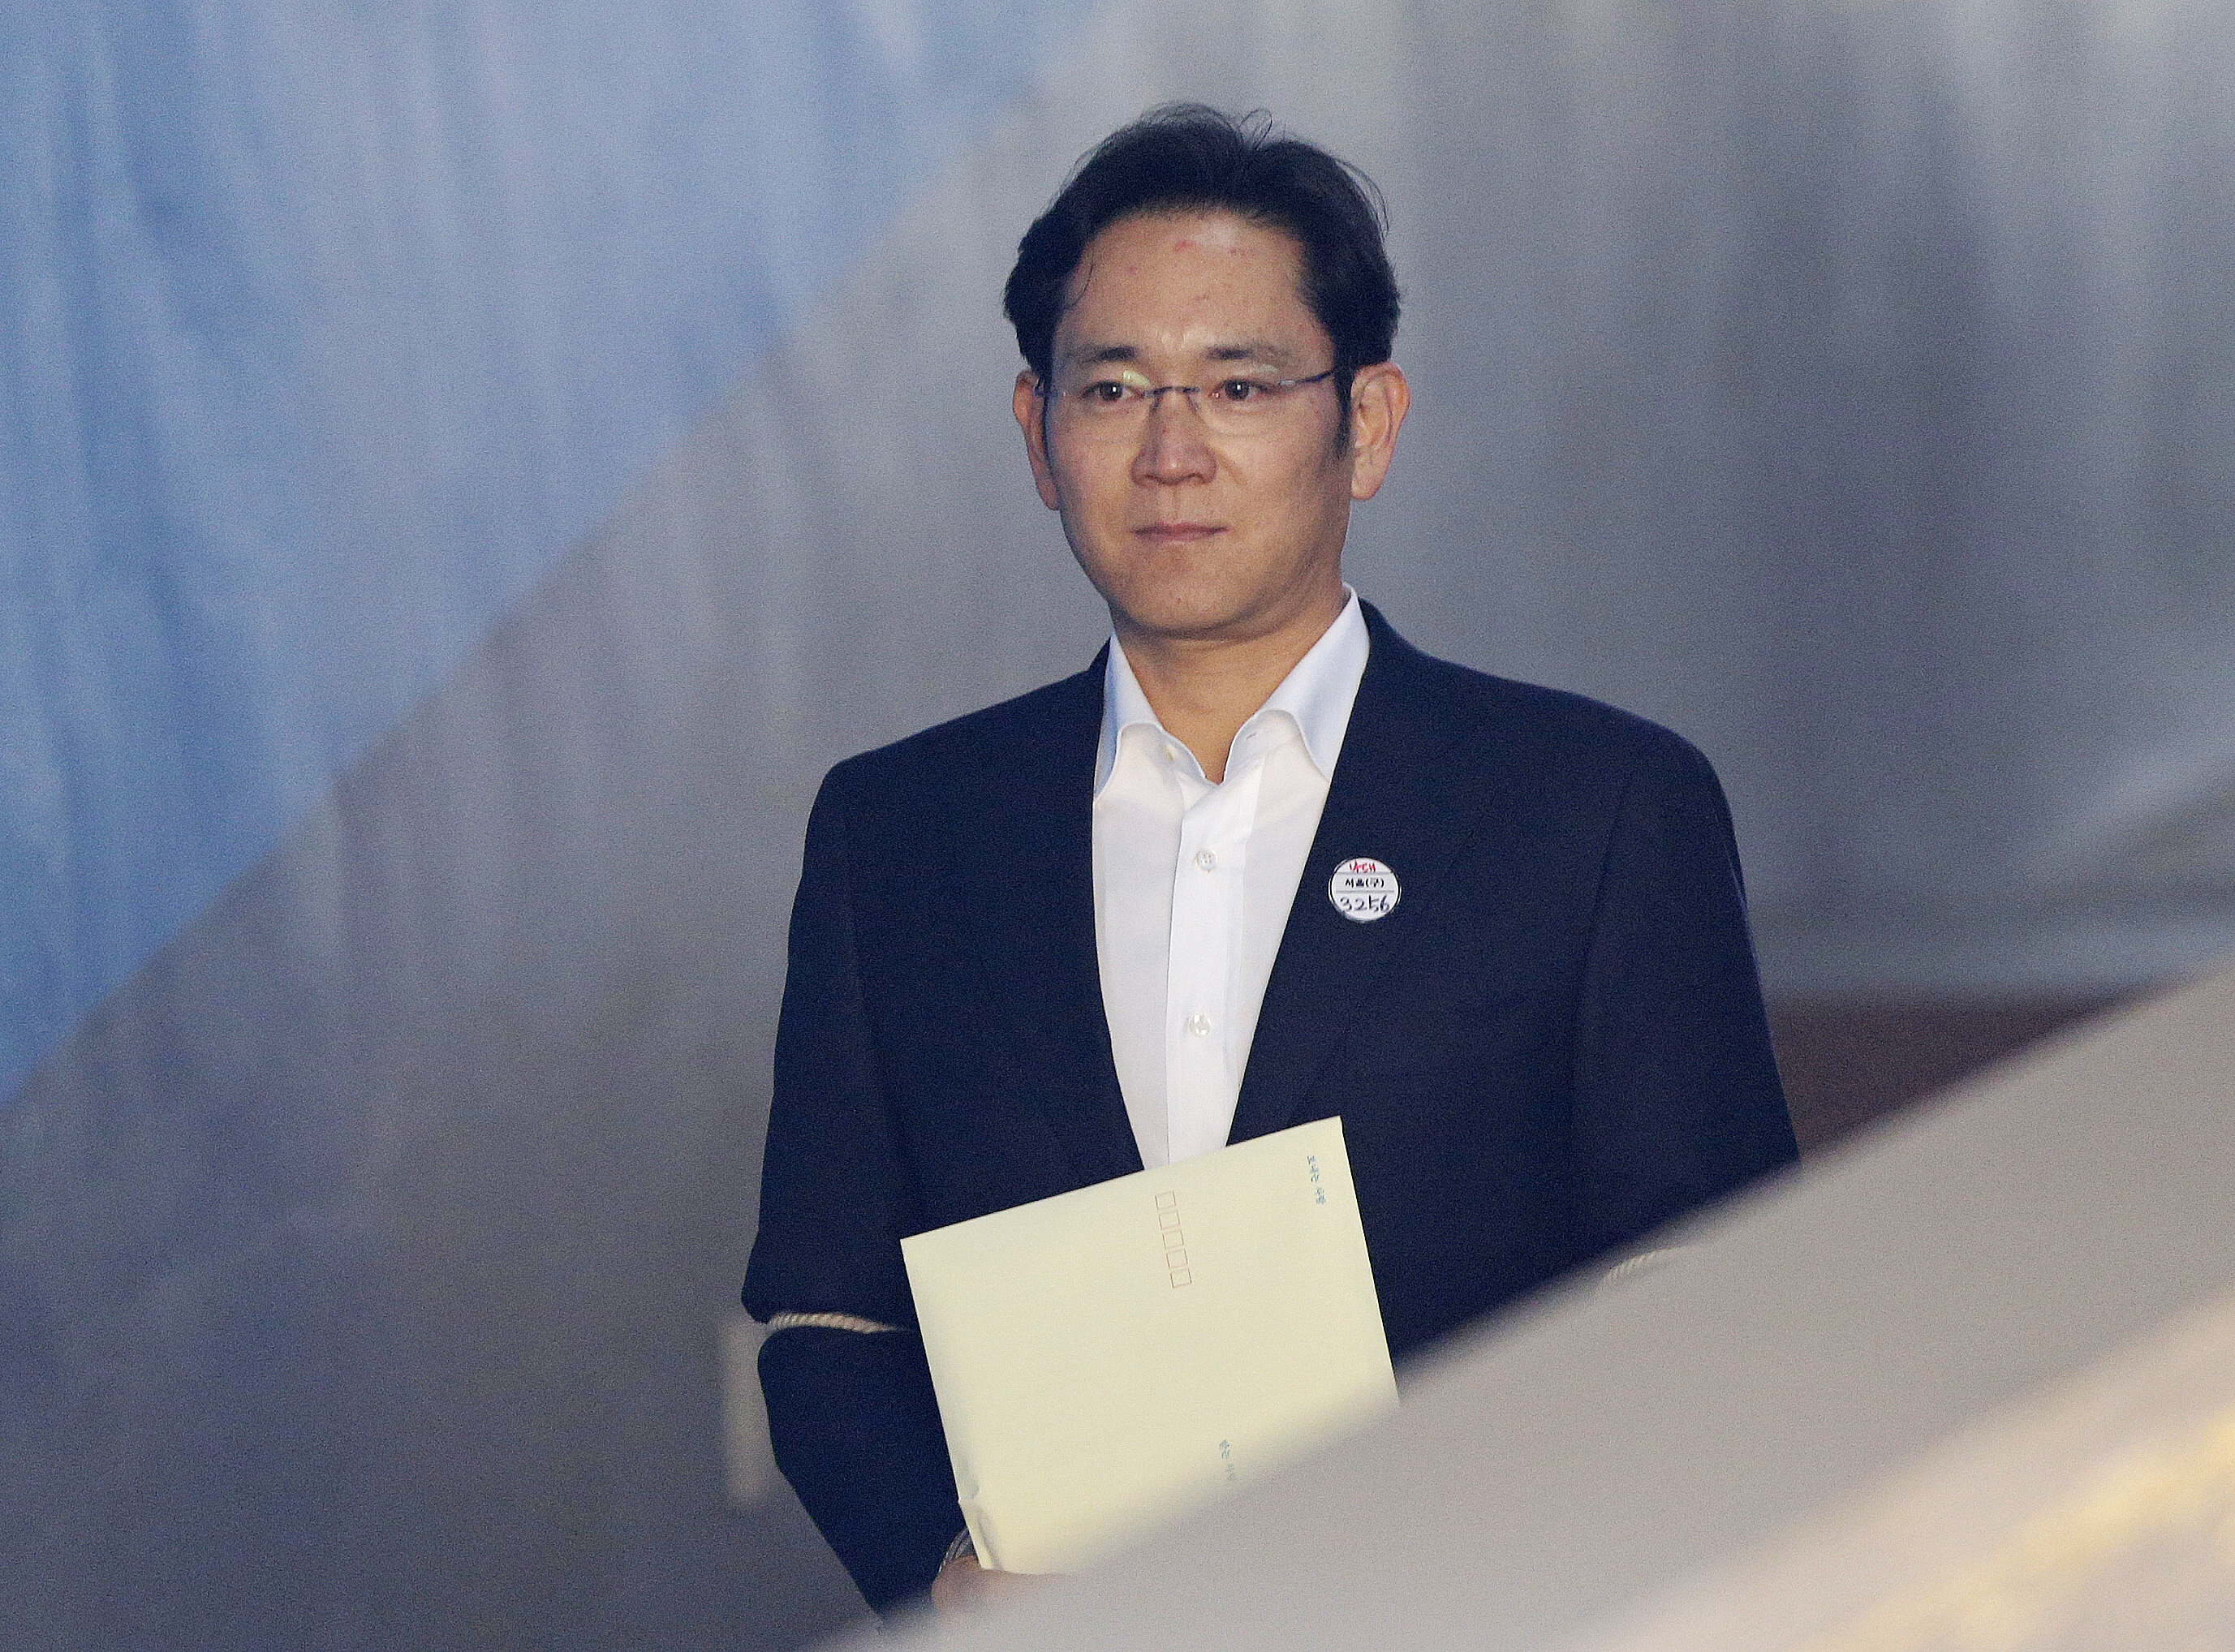 Samsung Heir Jay Y. Lee Appears At Court For Appeal Ruling